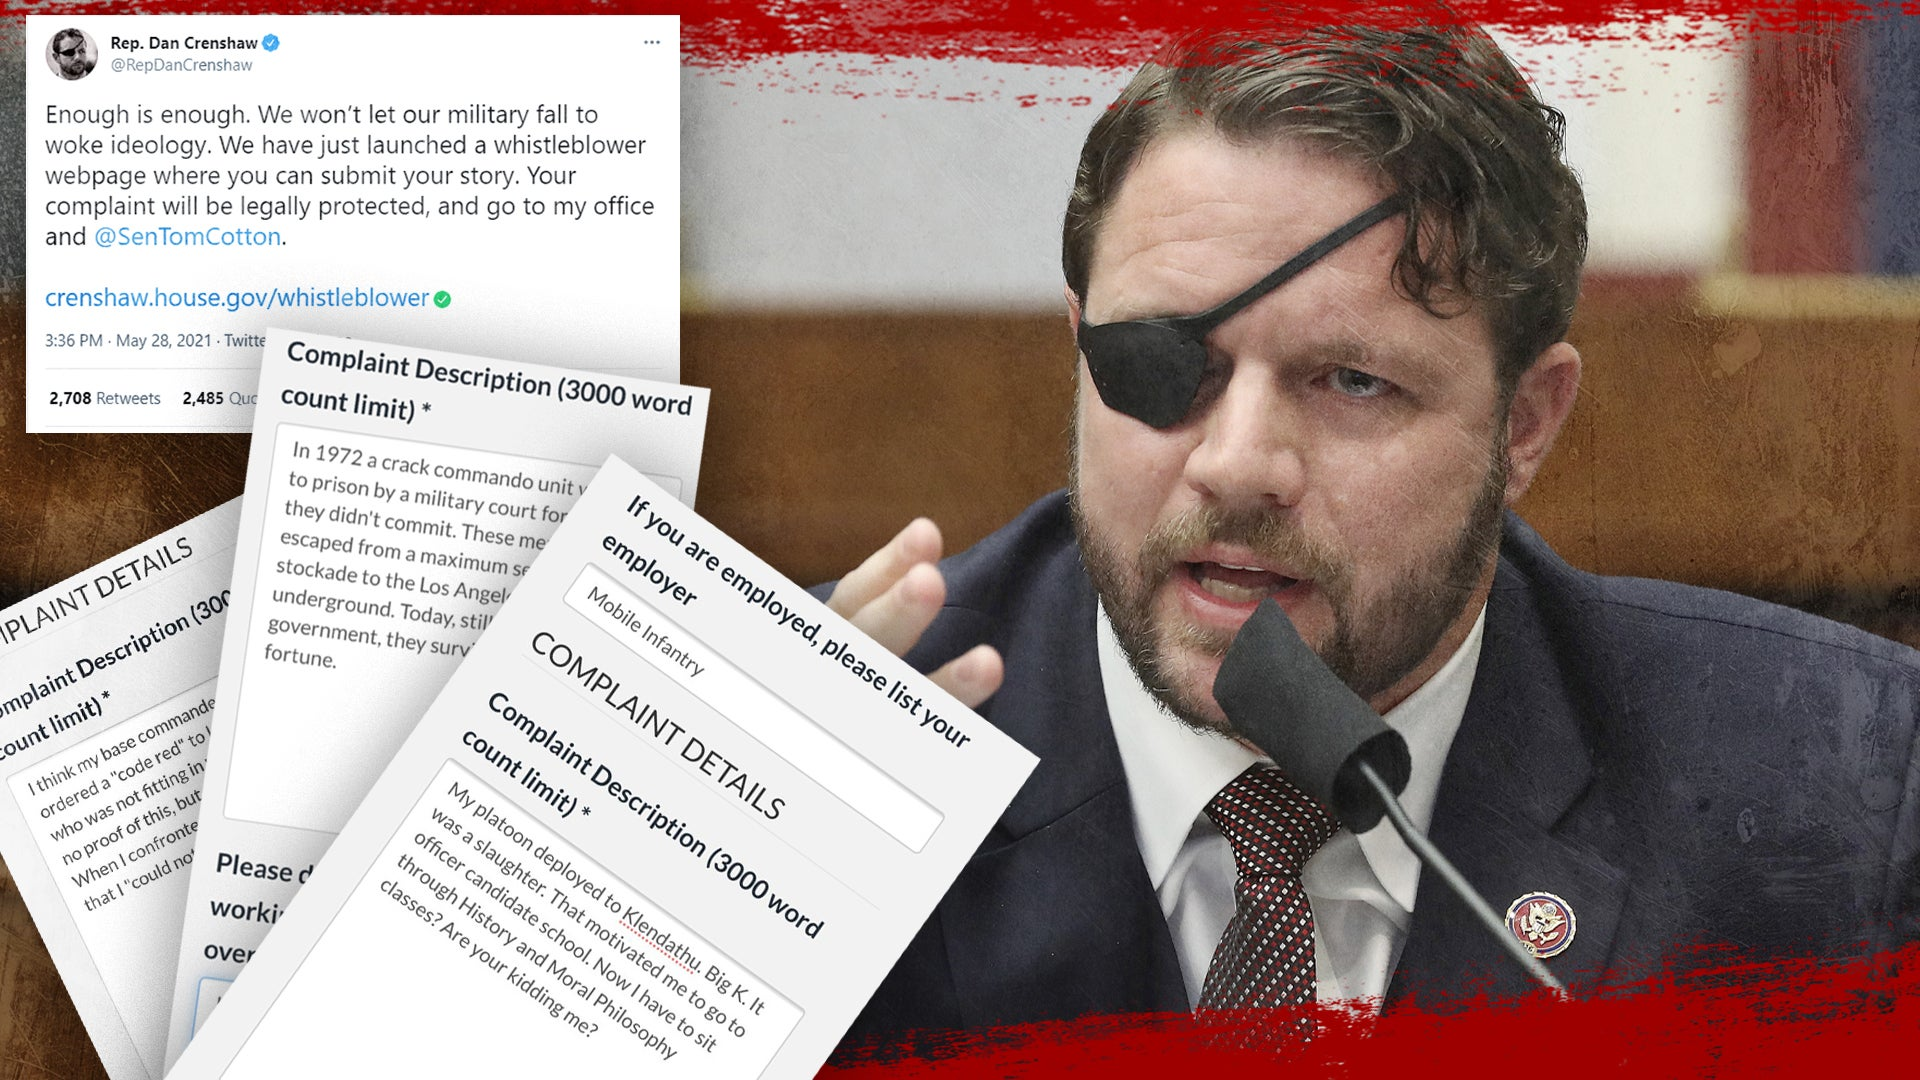 Dan Crenshaw wants people to blow the whistle on 'woke ideology' in the military and he's getting roasted for it [UPDATED]